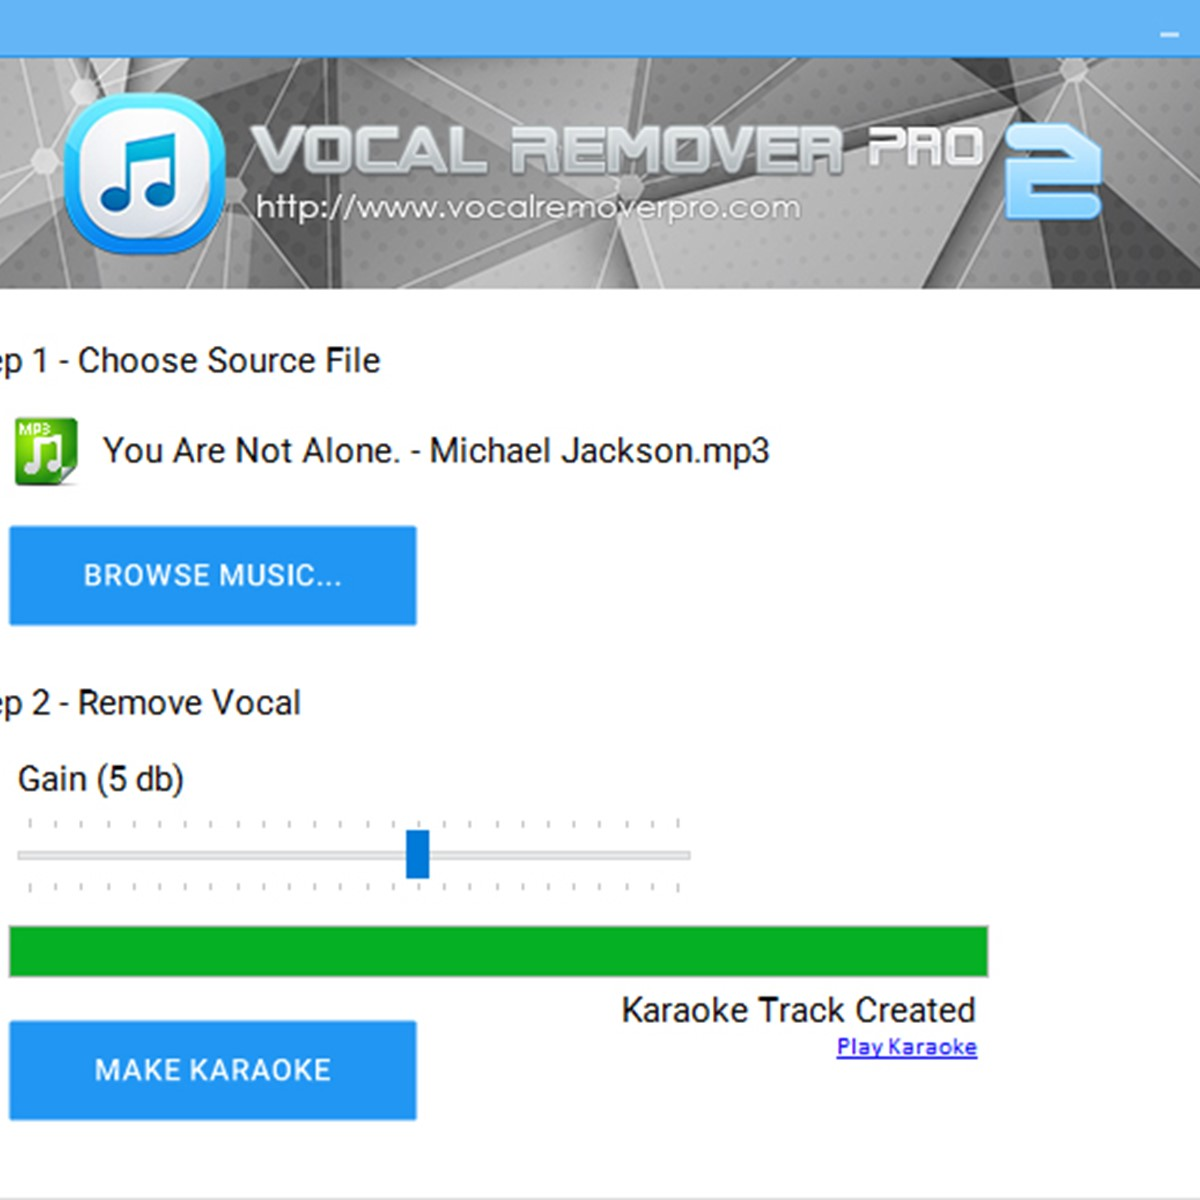 Vocal Remover Pro Alternatives and Similar Software